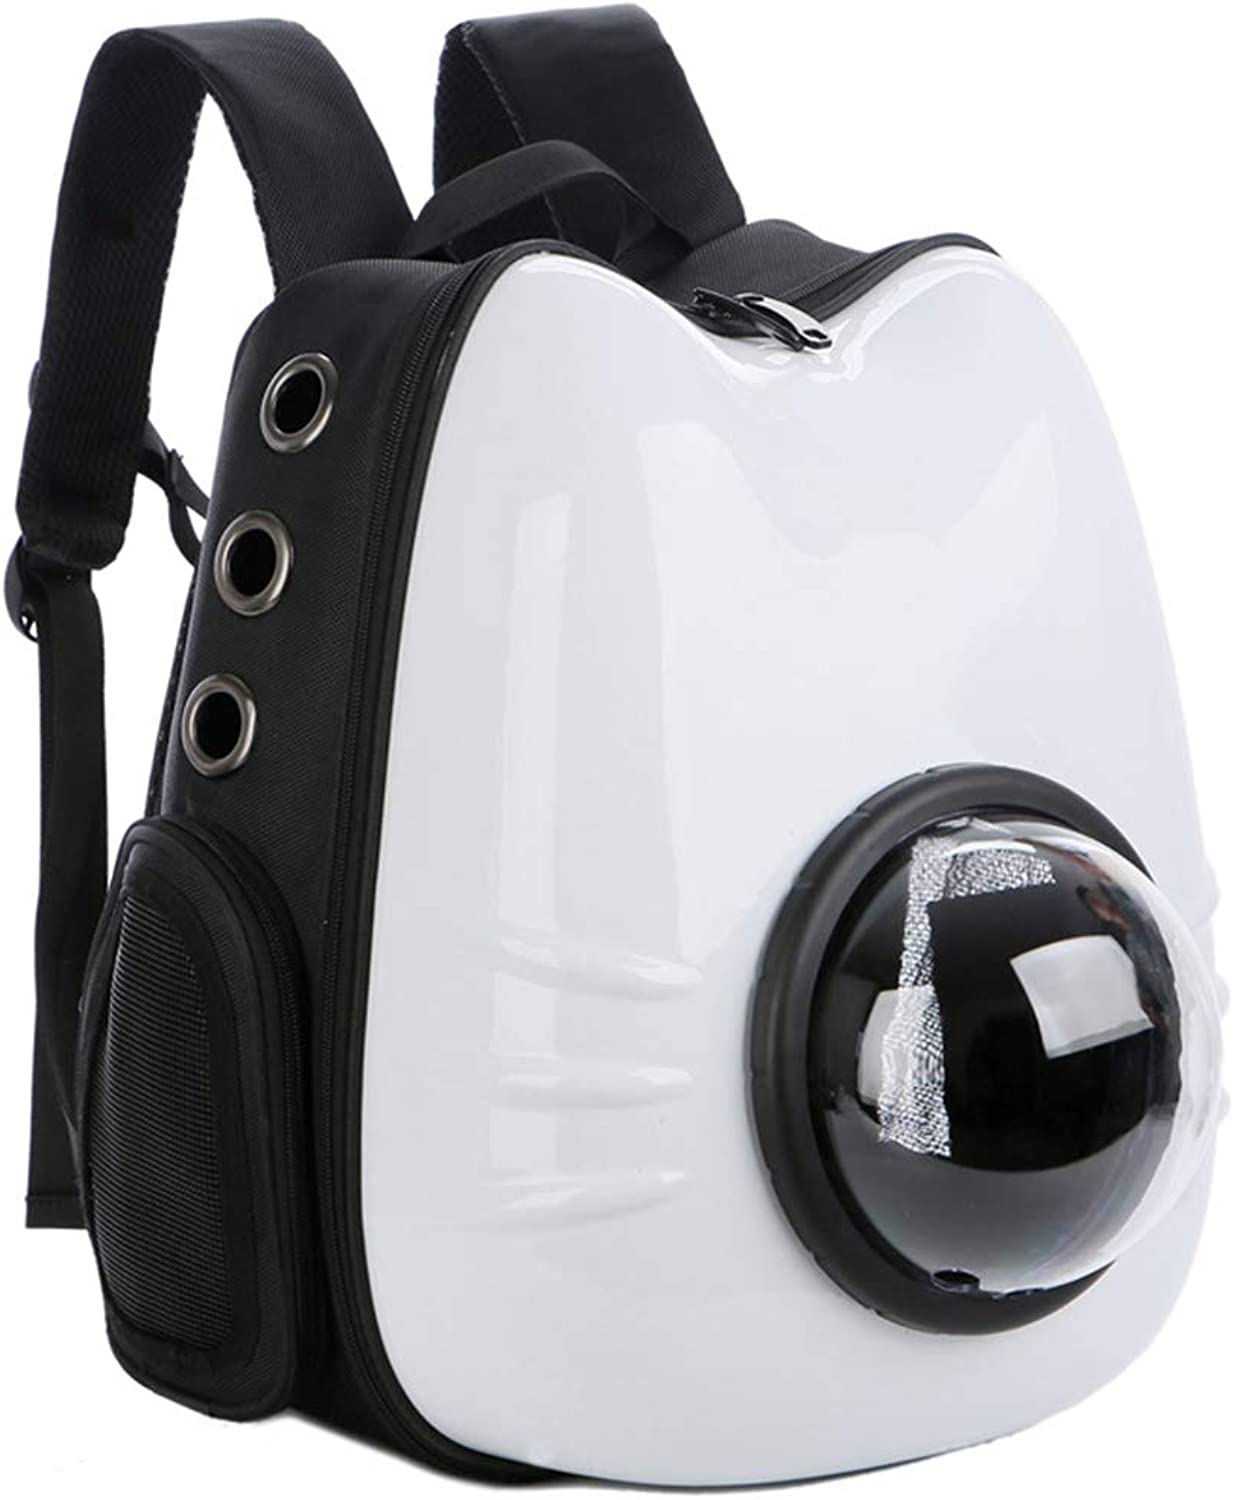 Pet Carrier Bags 180 Degree Transparent, Portable Pet Bag Space Capsule Bubble Design, Pet Travel Carrier Bag Airline Approved for Car Train and Airplane Travel,White